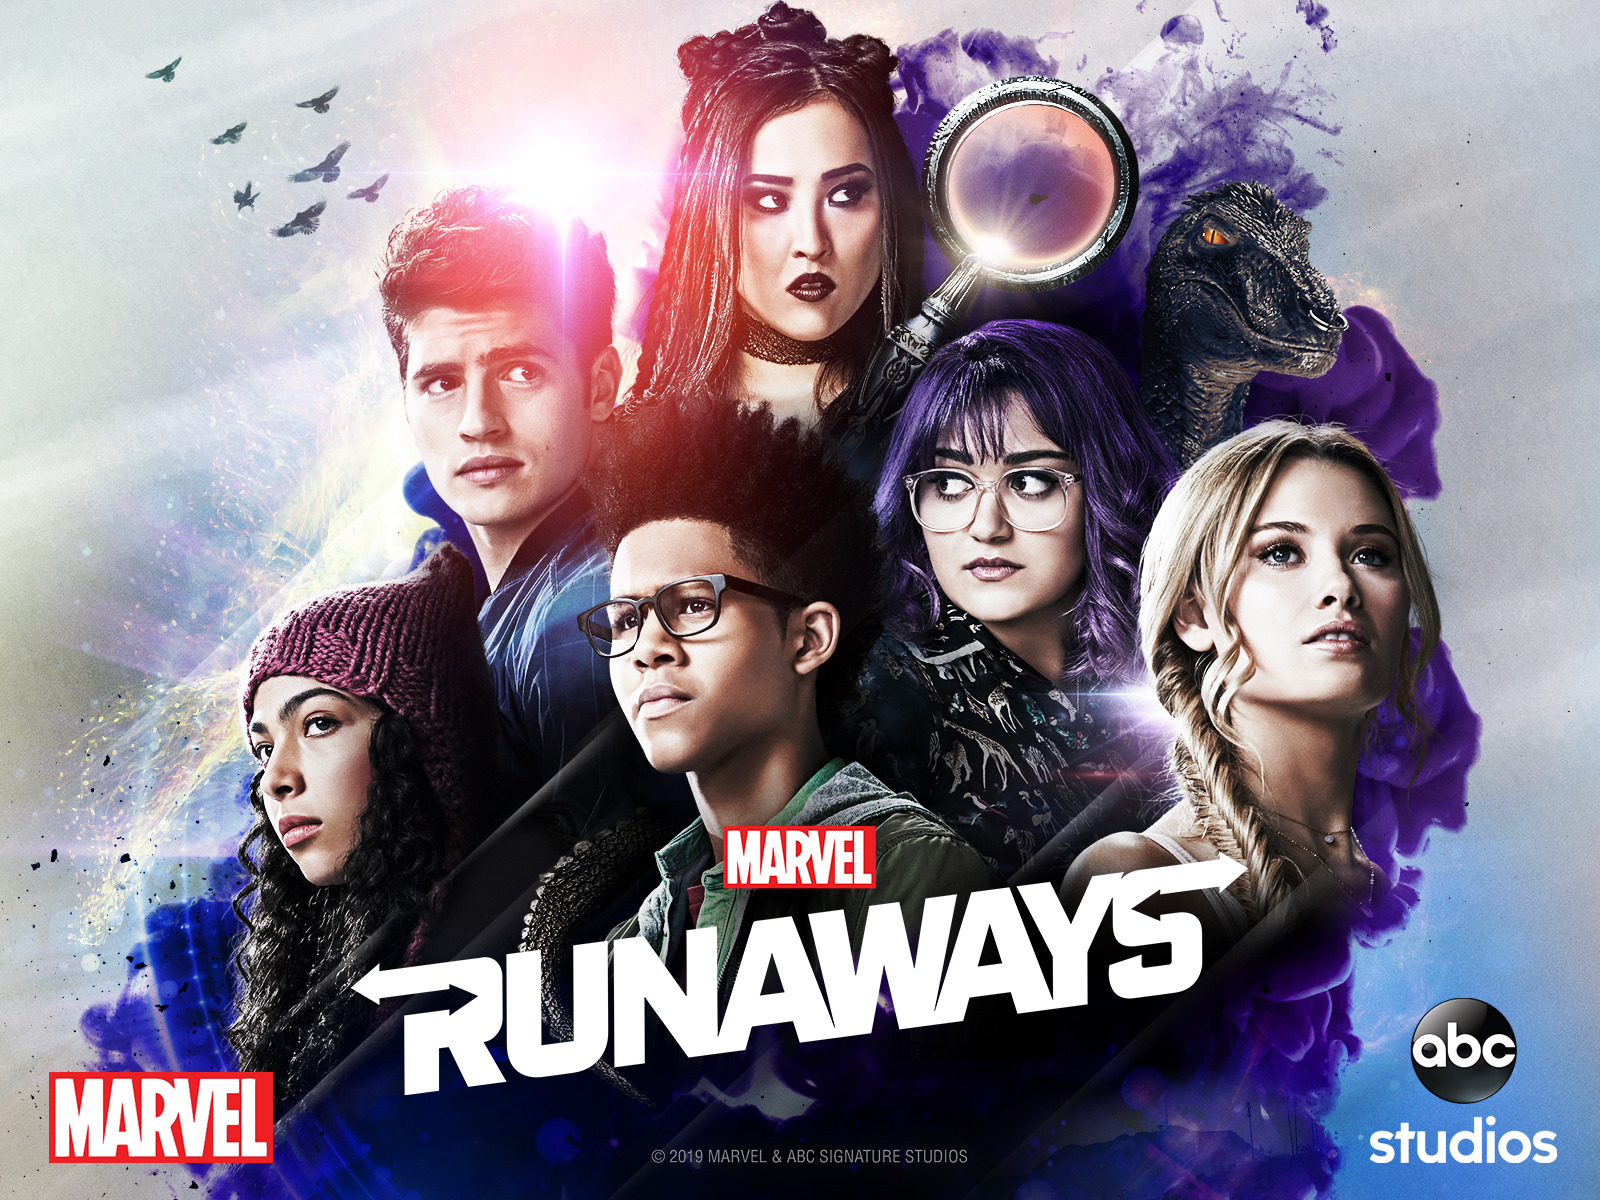 Prime Video: Marvel Runaways Season 3